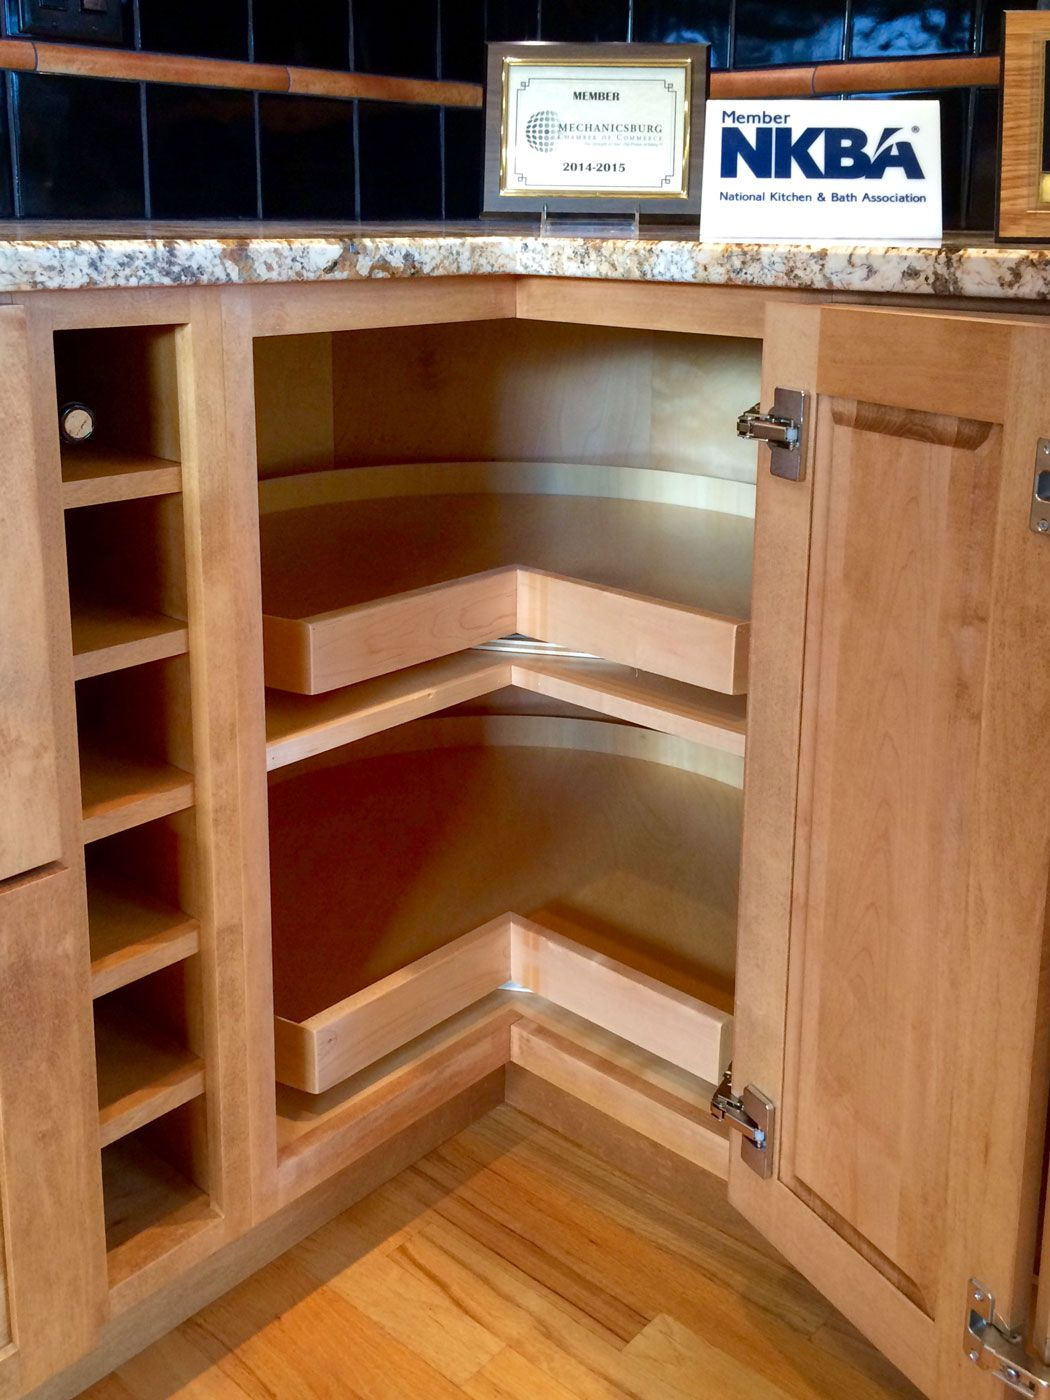 5 Solutions For Your Corner Cabinet Storage Needs Mother